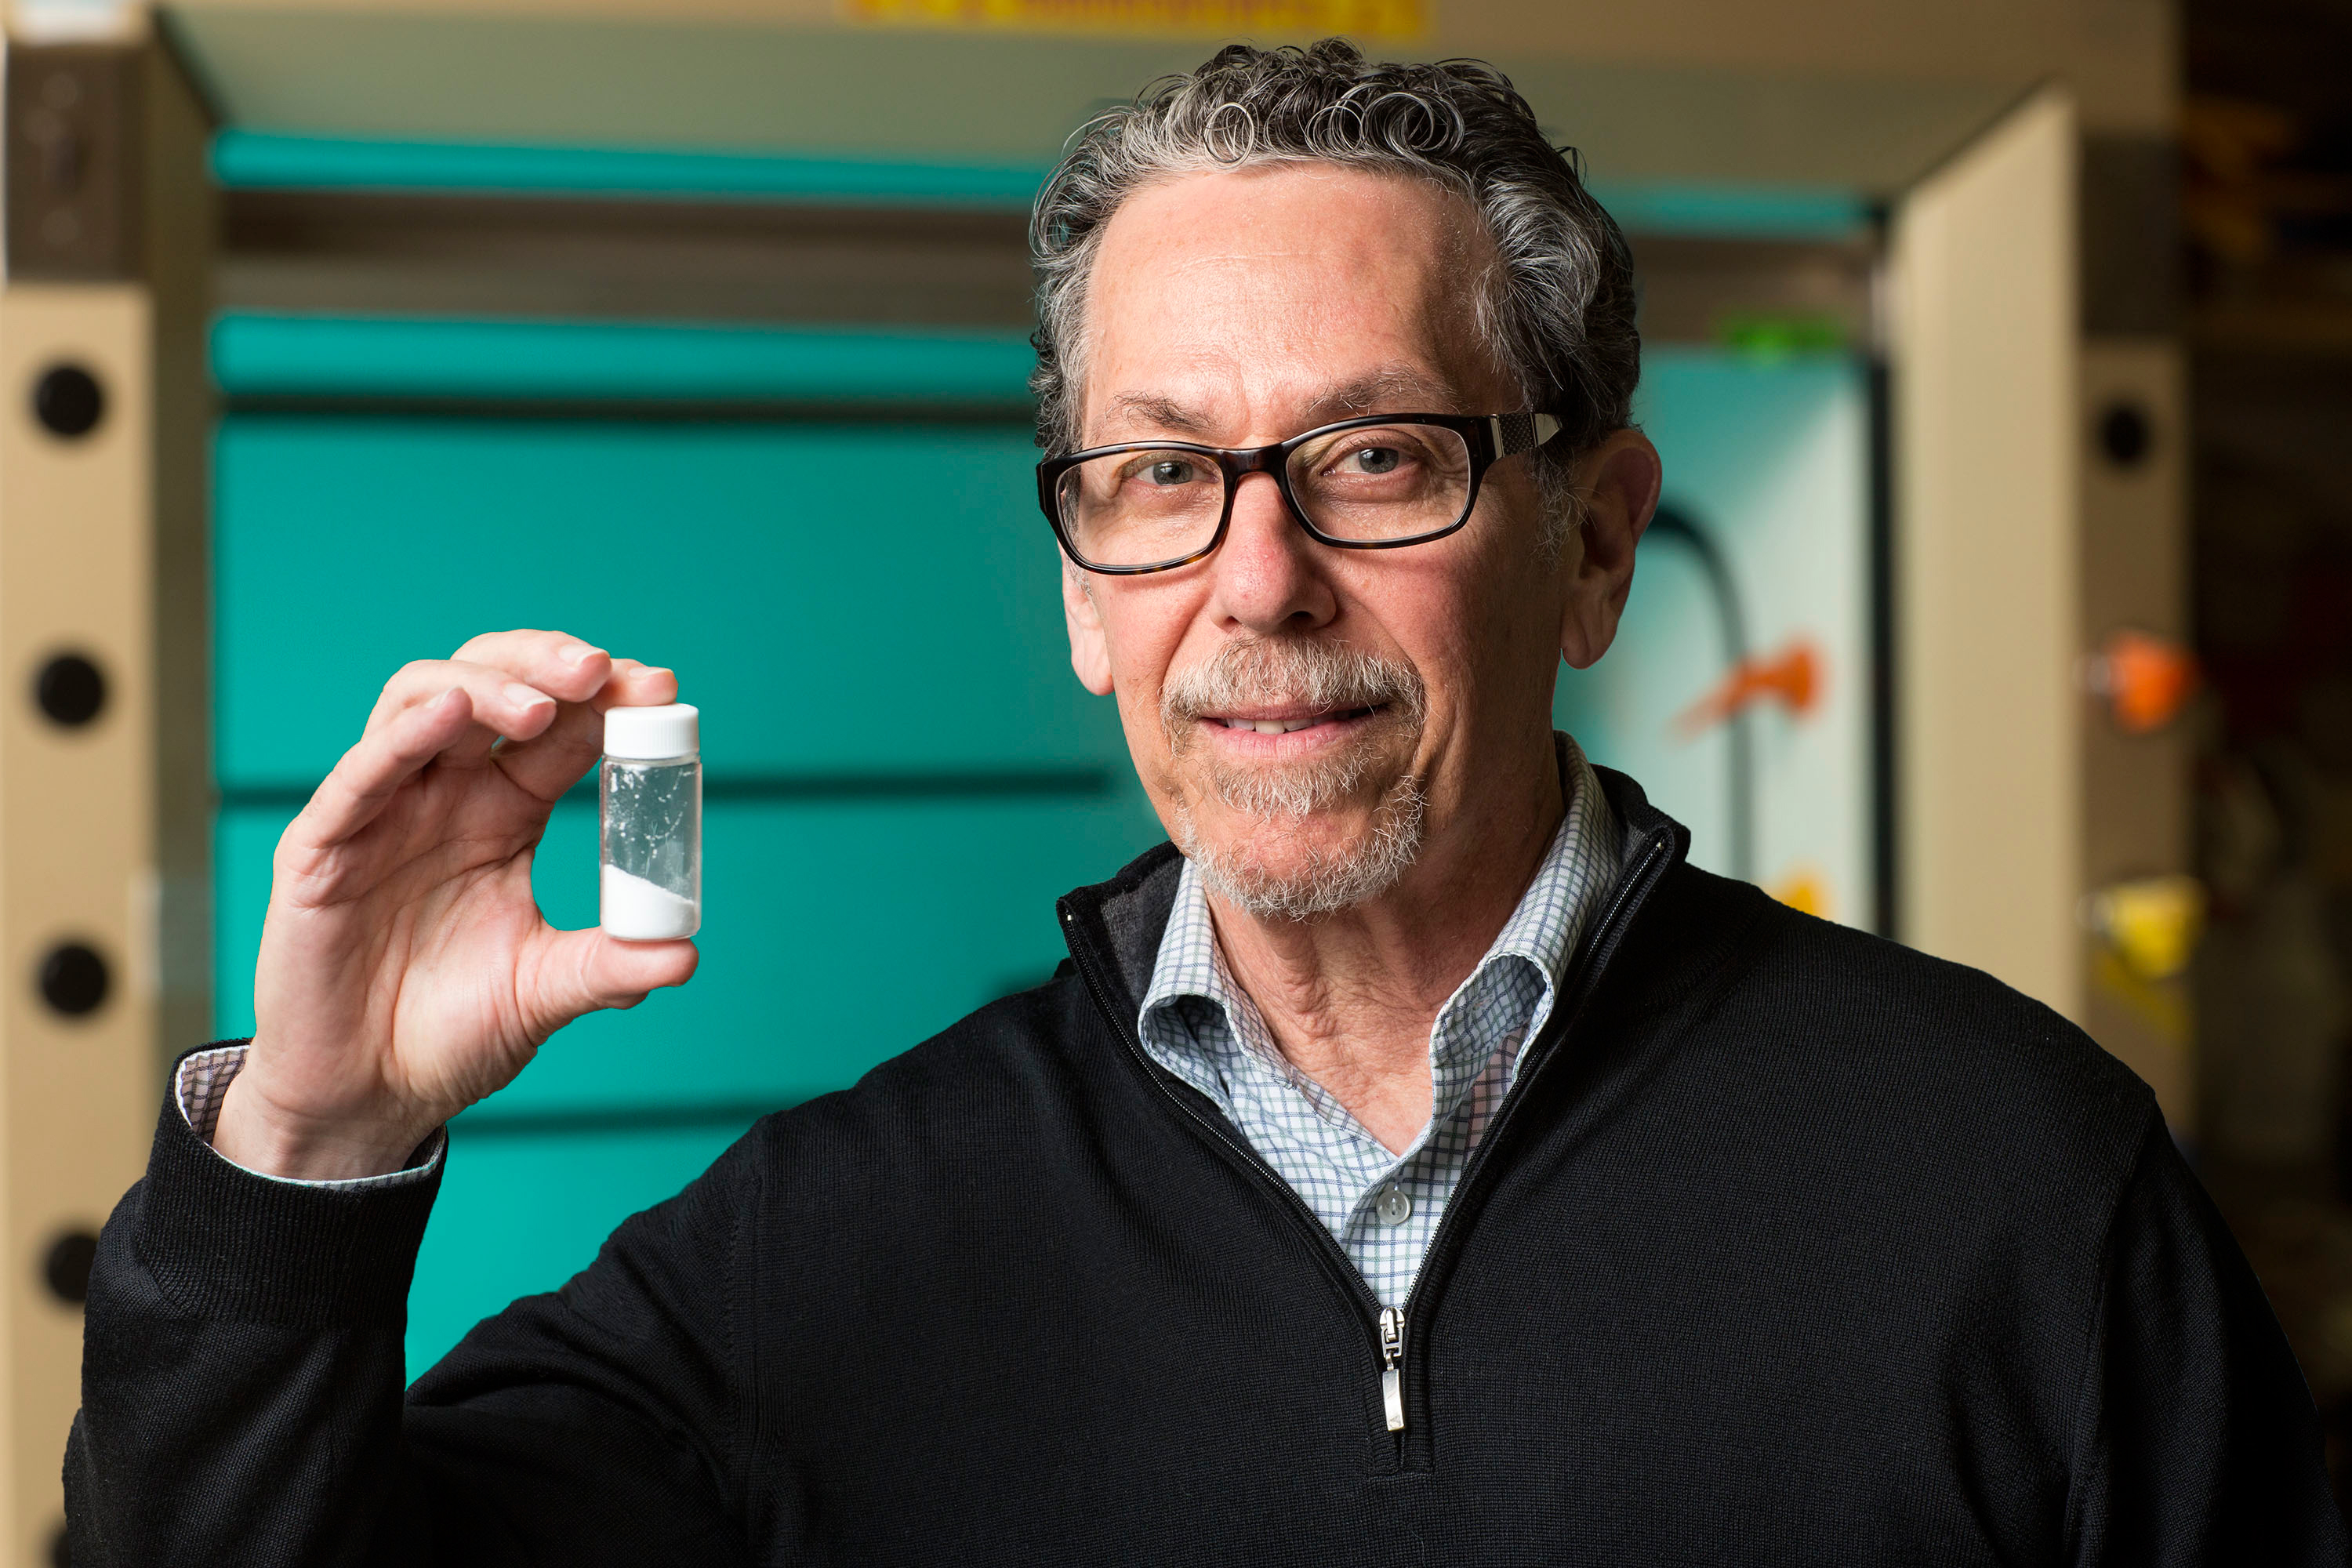 Meal-In-A-Pill Tricks Body into Losing Weight: Salk Scientists Develop 'Imaginary Meal' Diet Pill